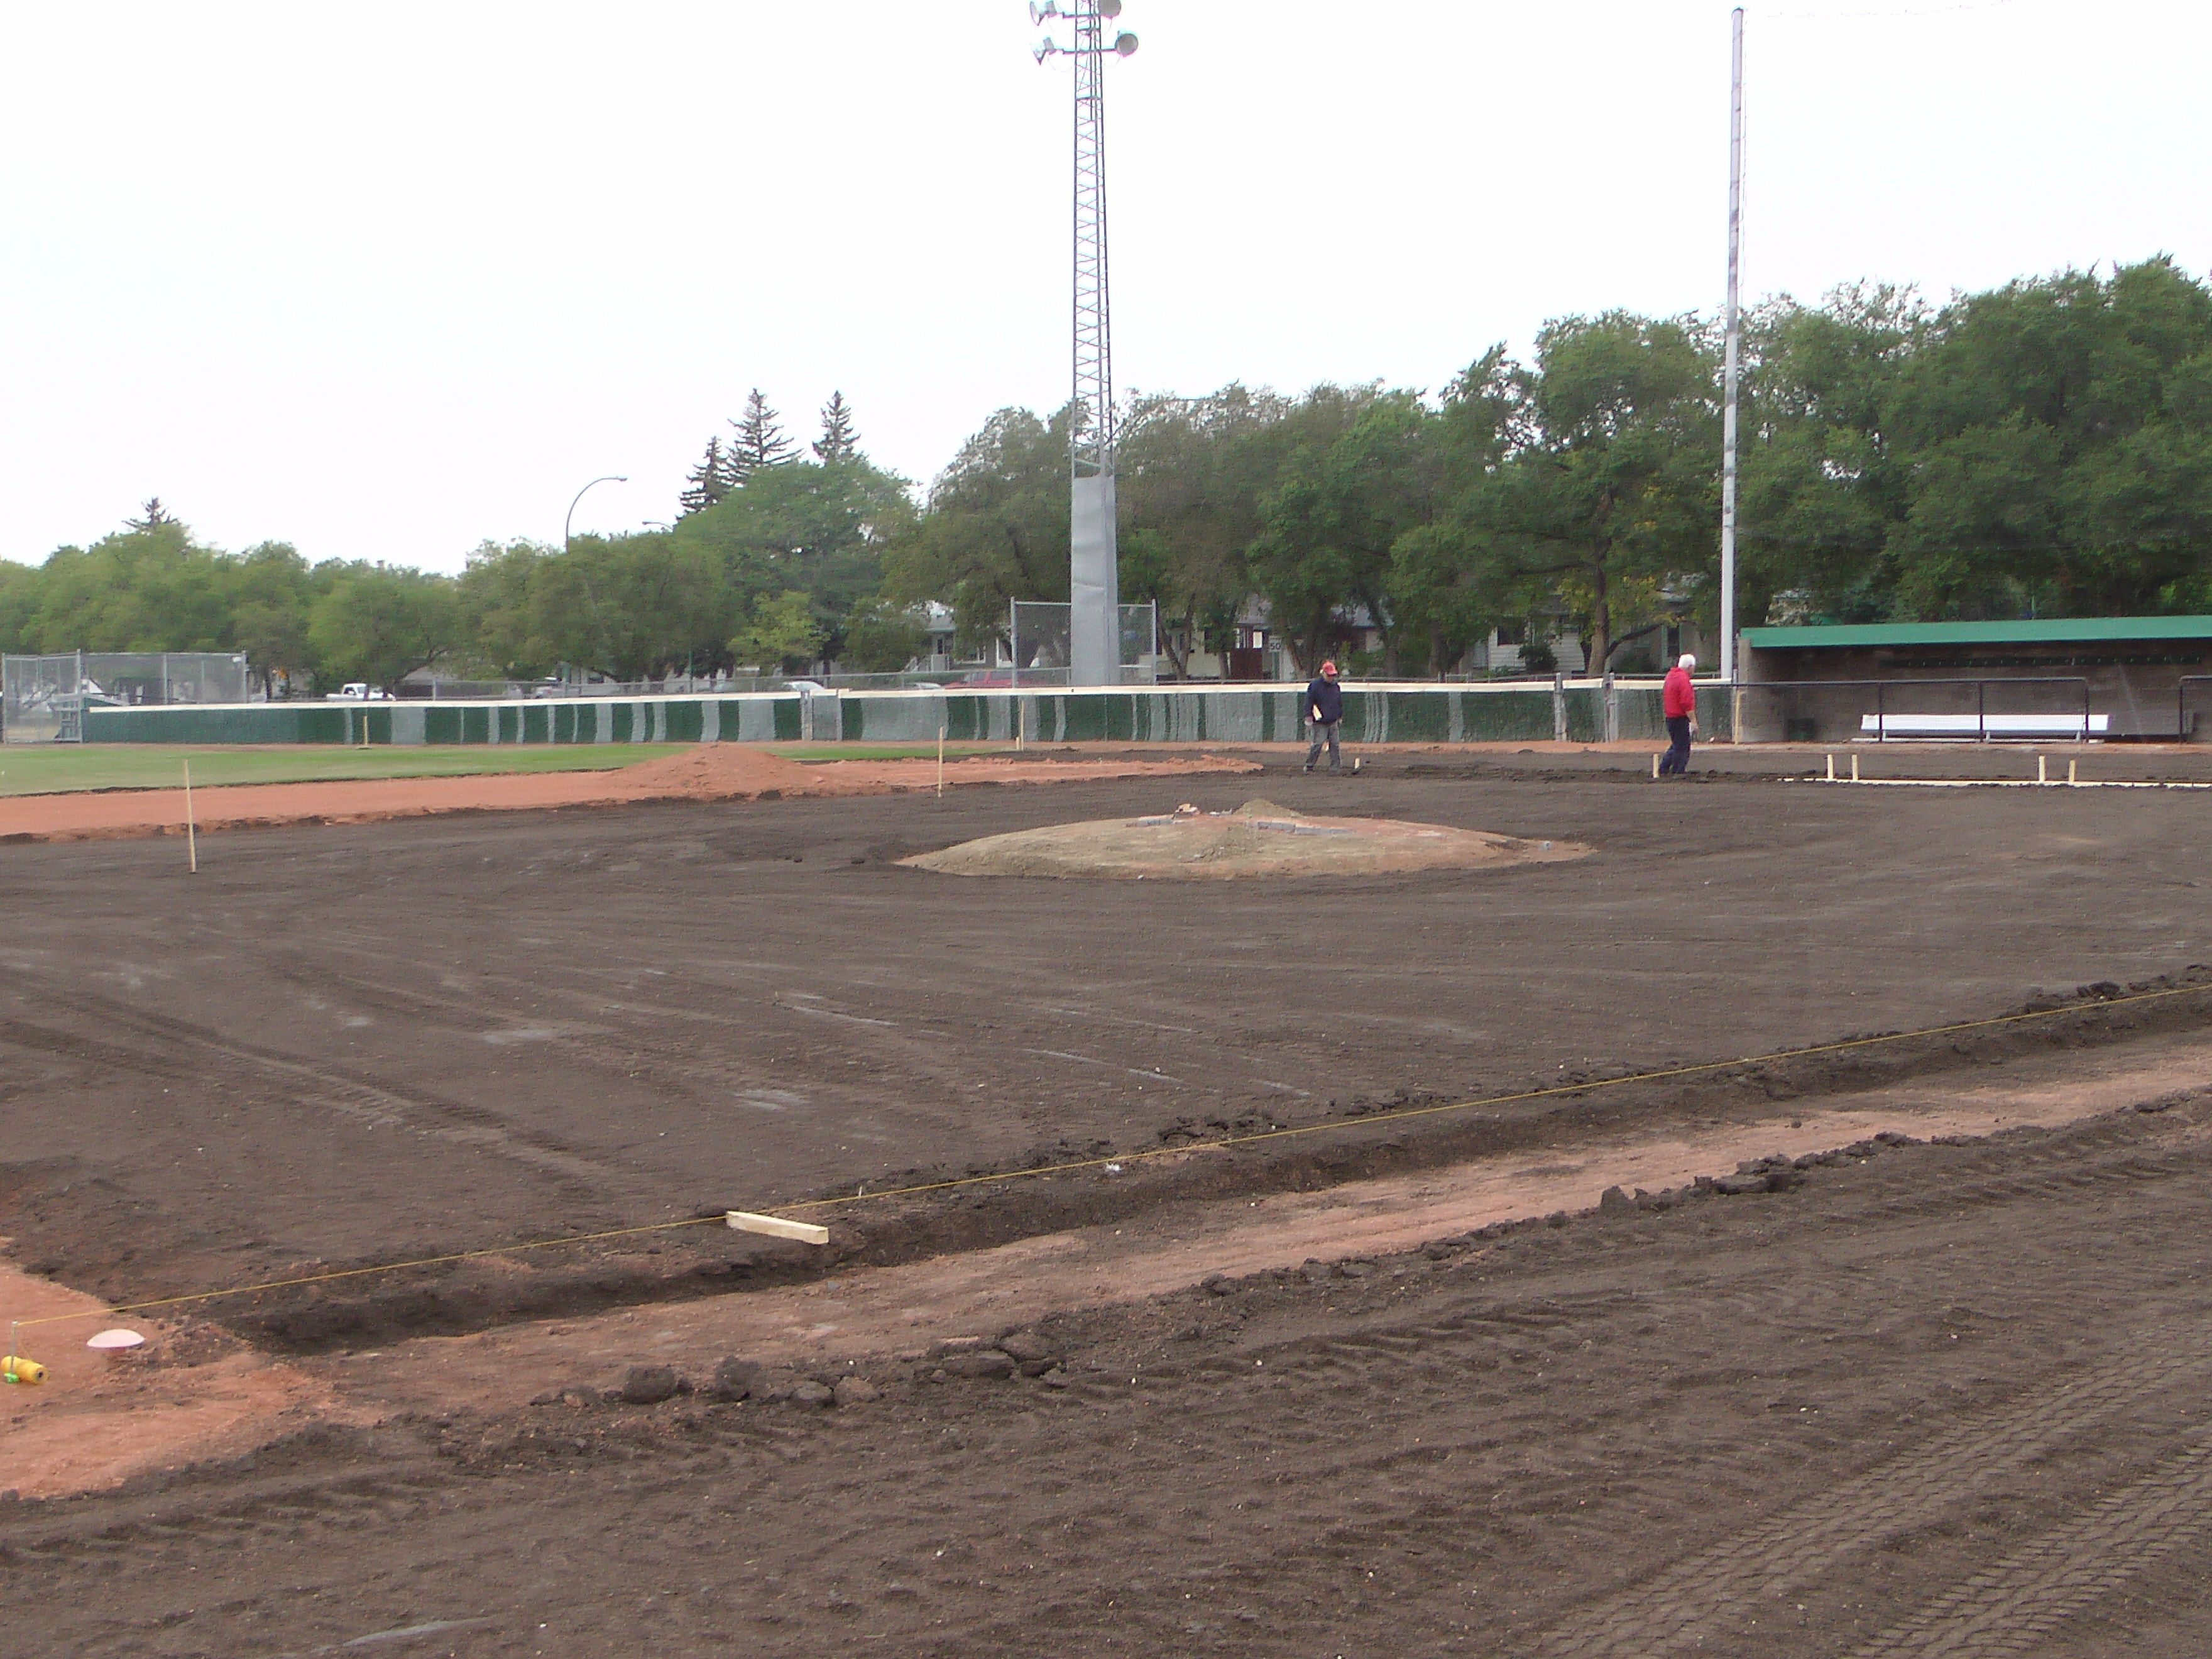 Aug 26/27 2018 Optimist Park Renovations, Continue Leveling Top Soil, More Top Soil added, Digging/Leveling Base Lines/Start Level Shale - Image 21